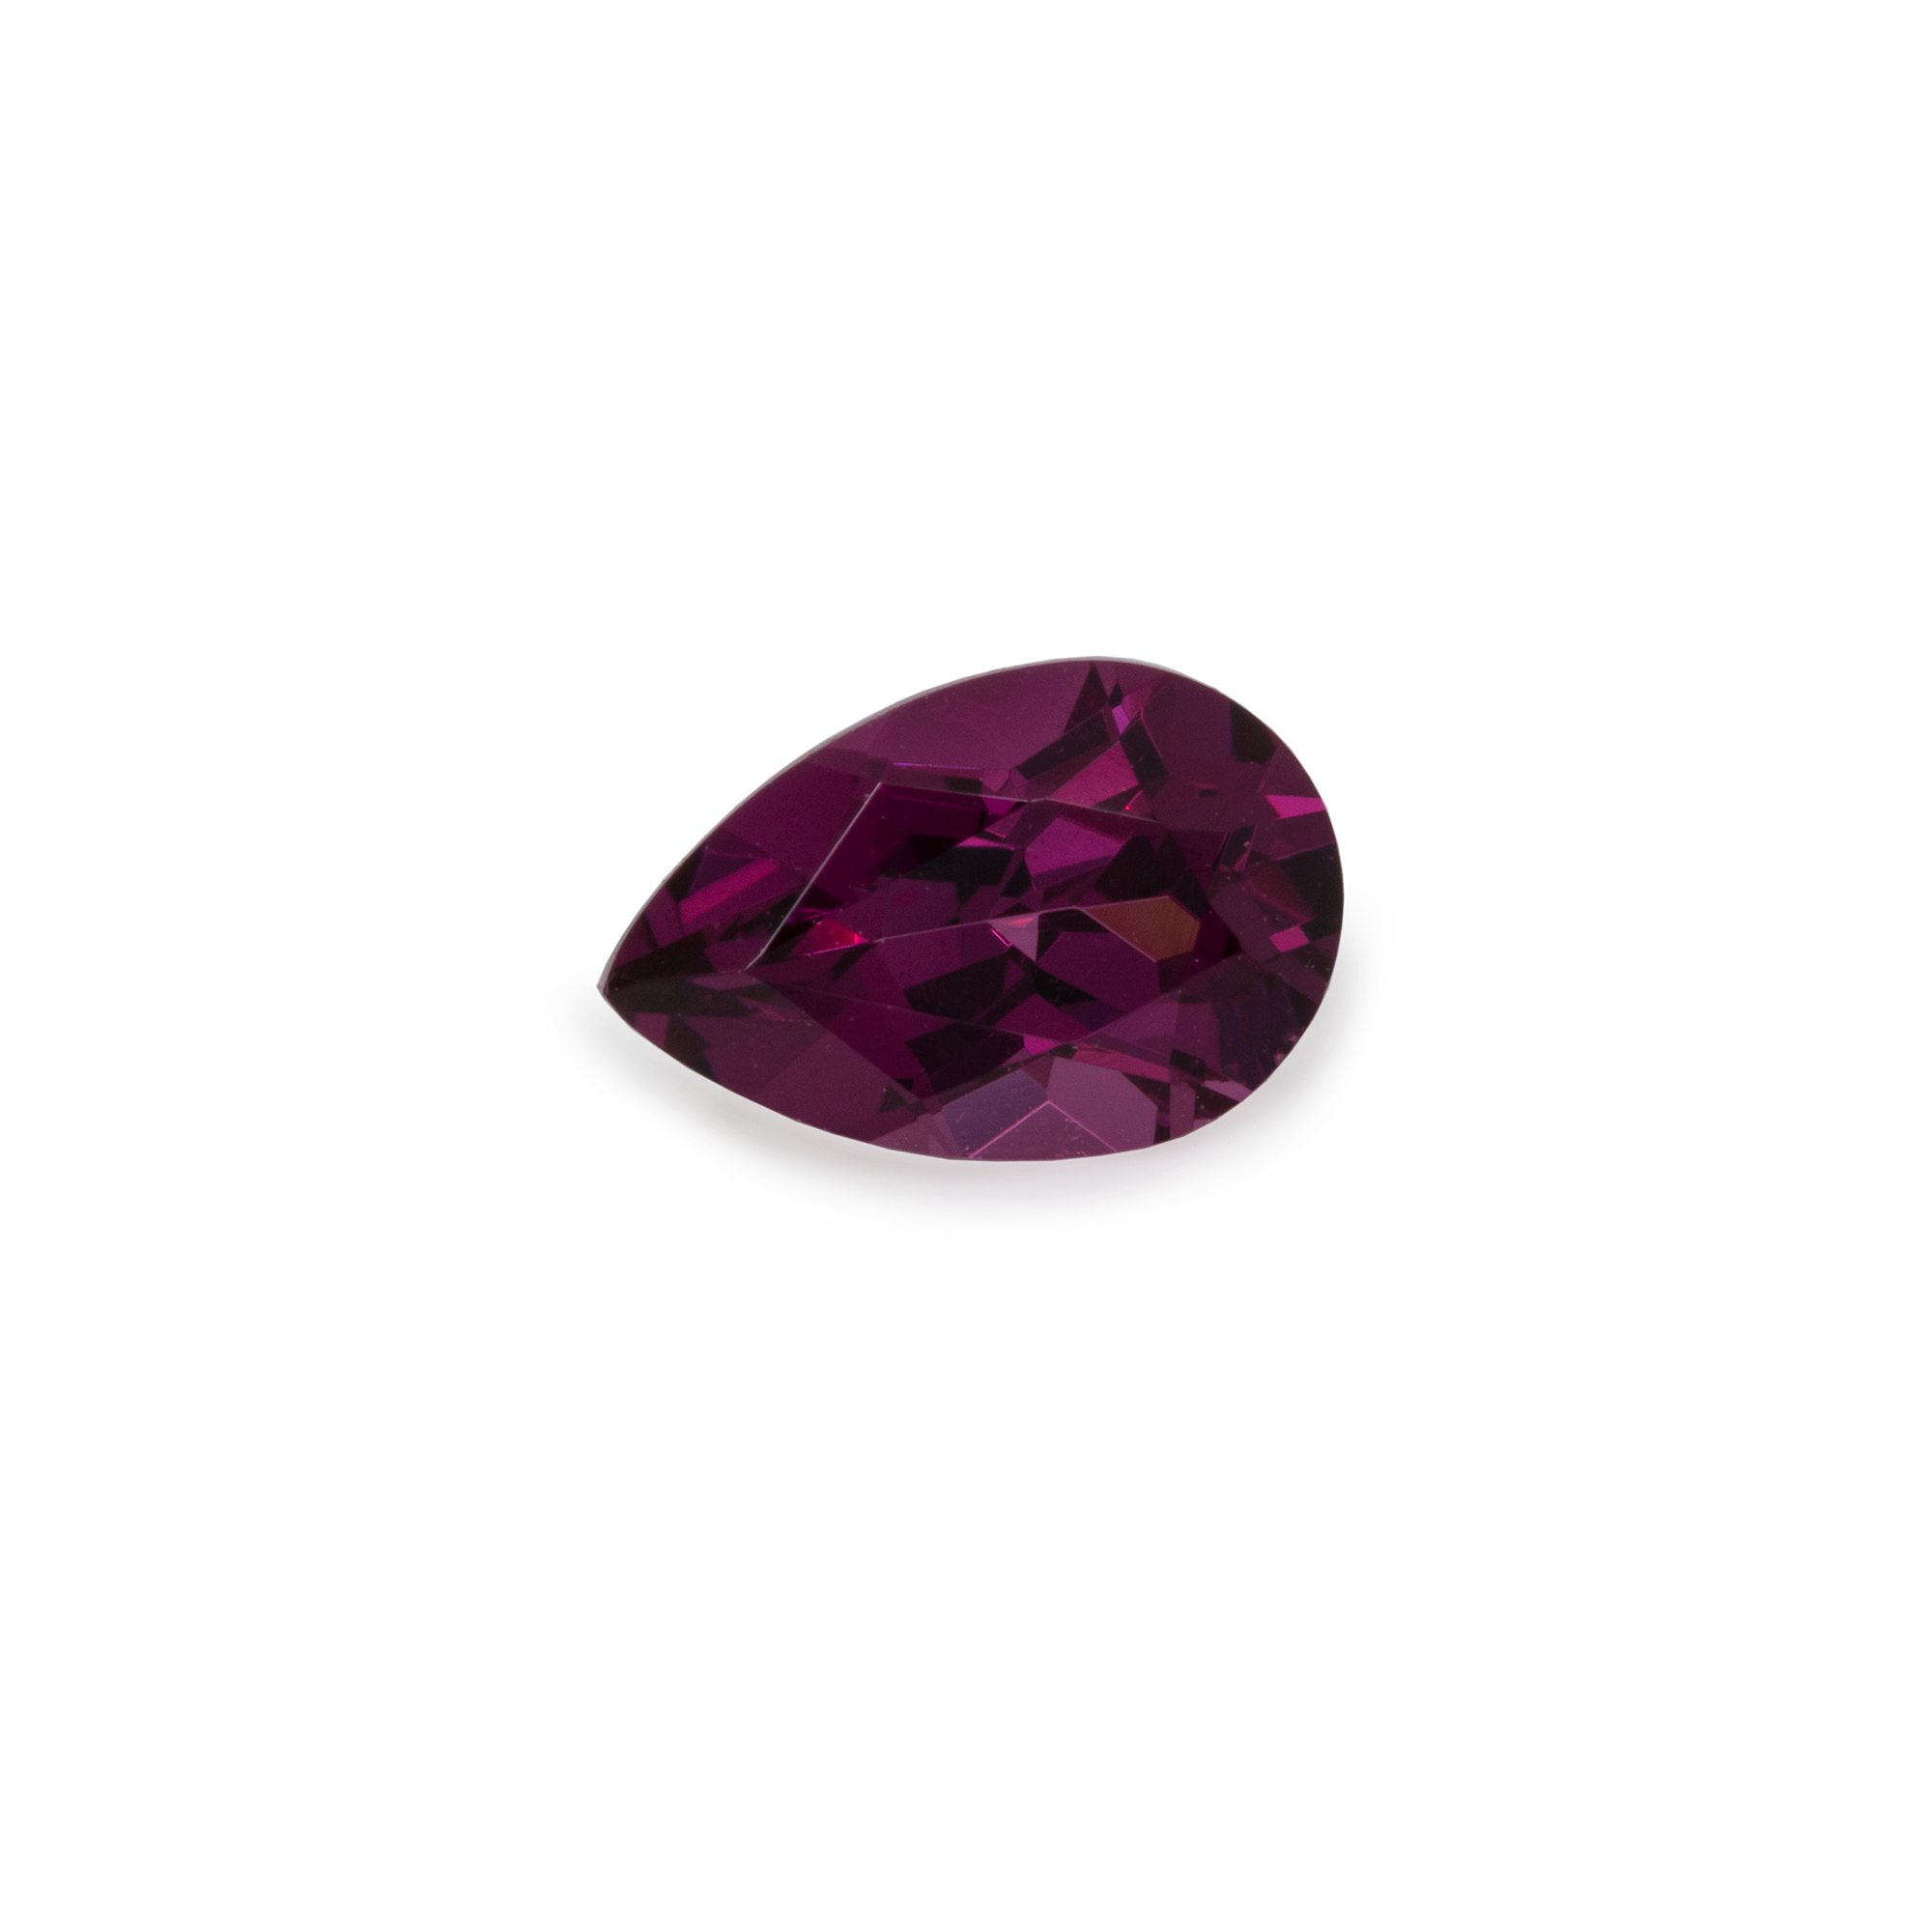 Royal Purple Garnet - lila, birnform, 6x4 mm, 0,46-0,54 cts, Nr. RP19001